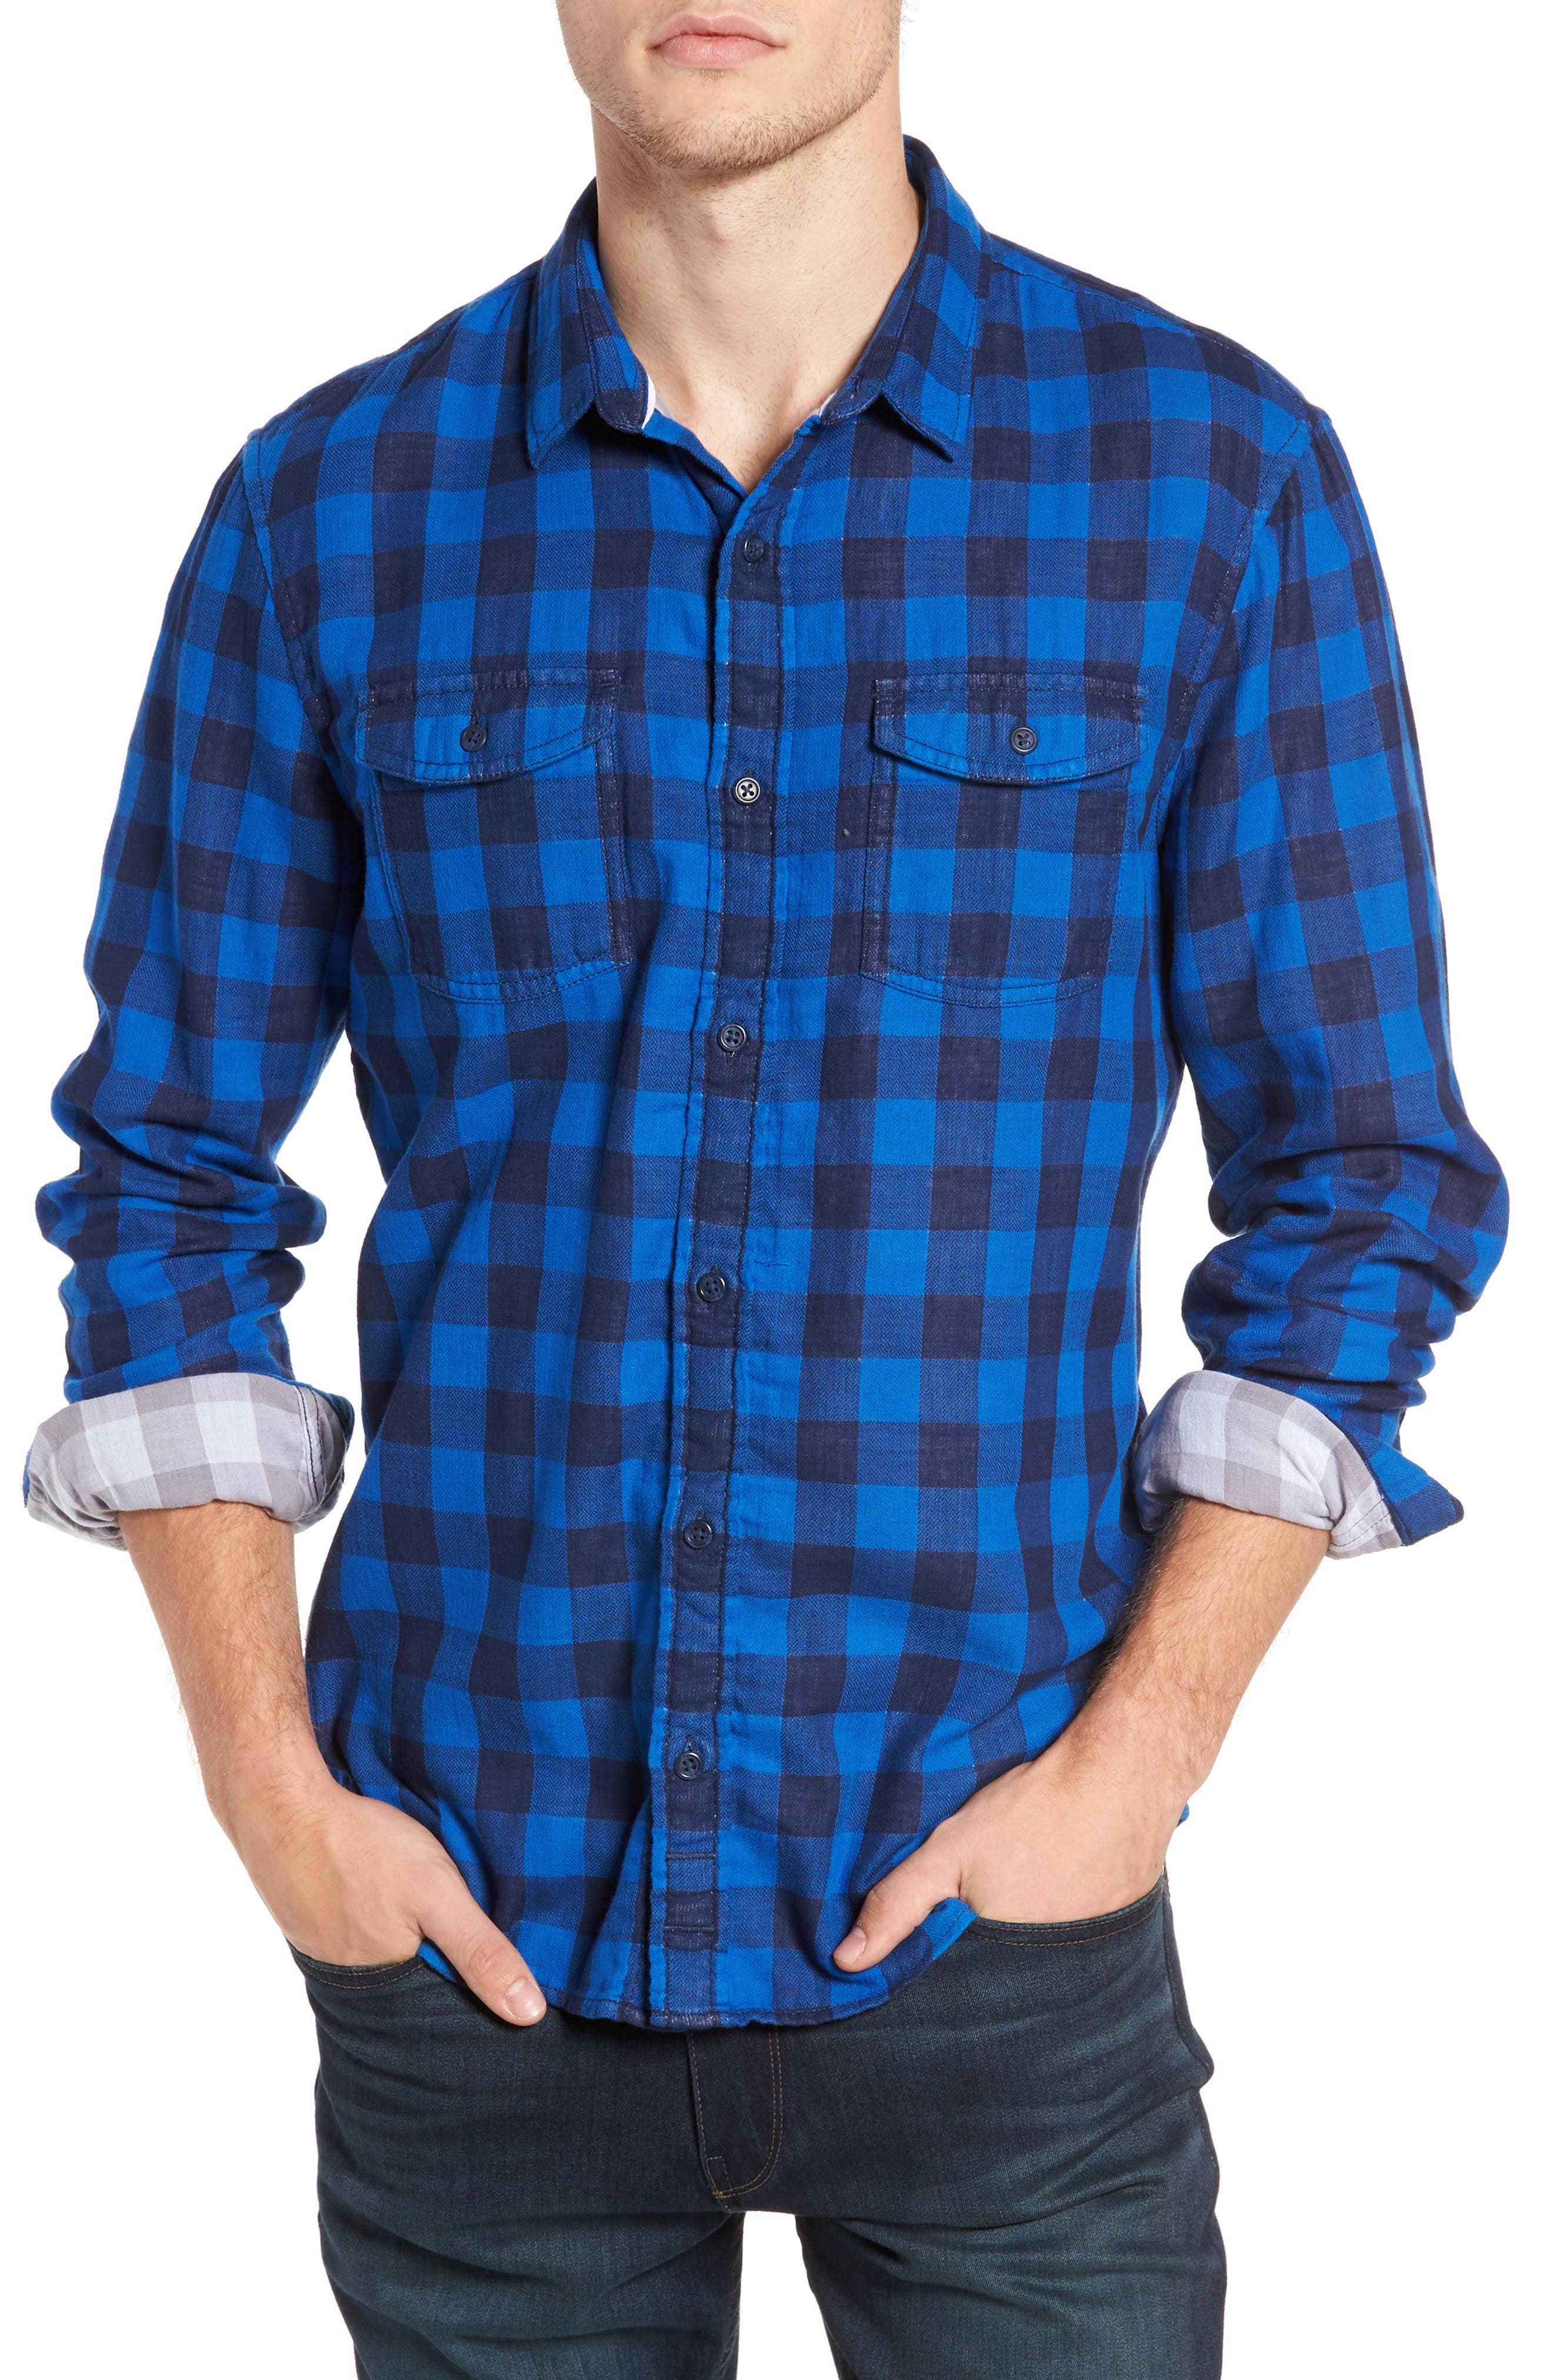 Duofold Check Sport Shirt,                             Main thumbnail 1, color,                             420